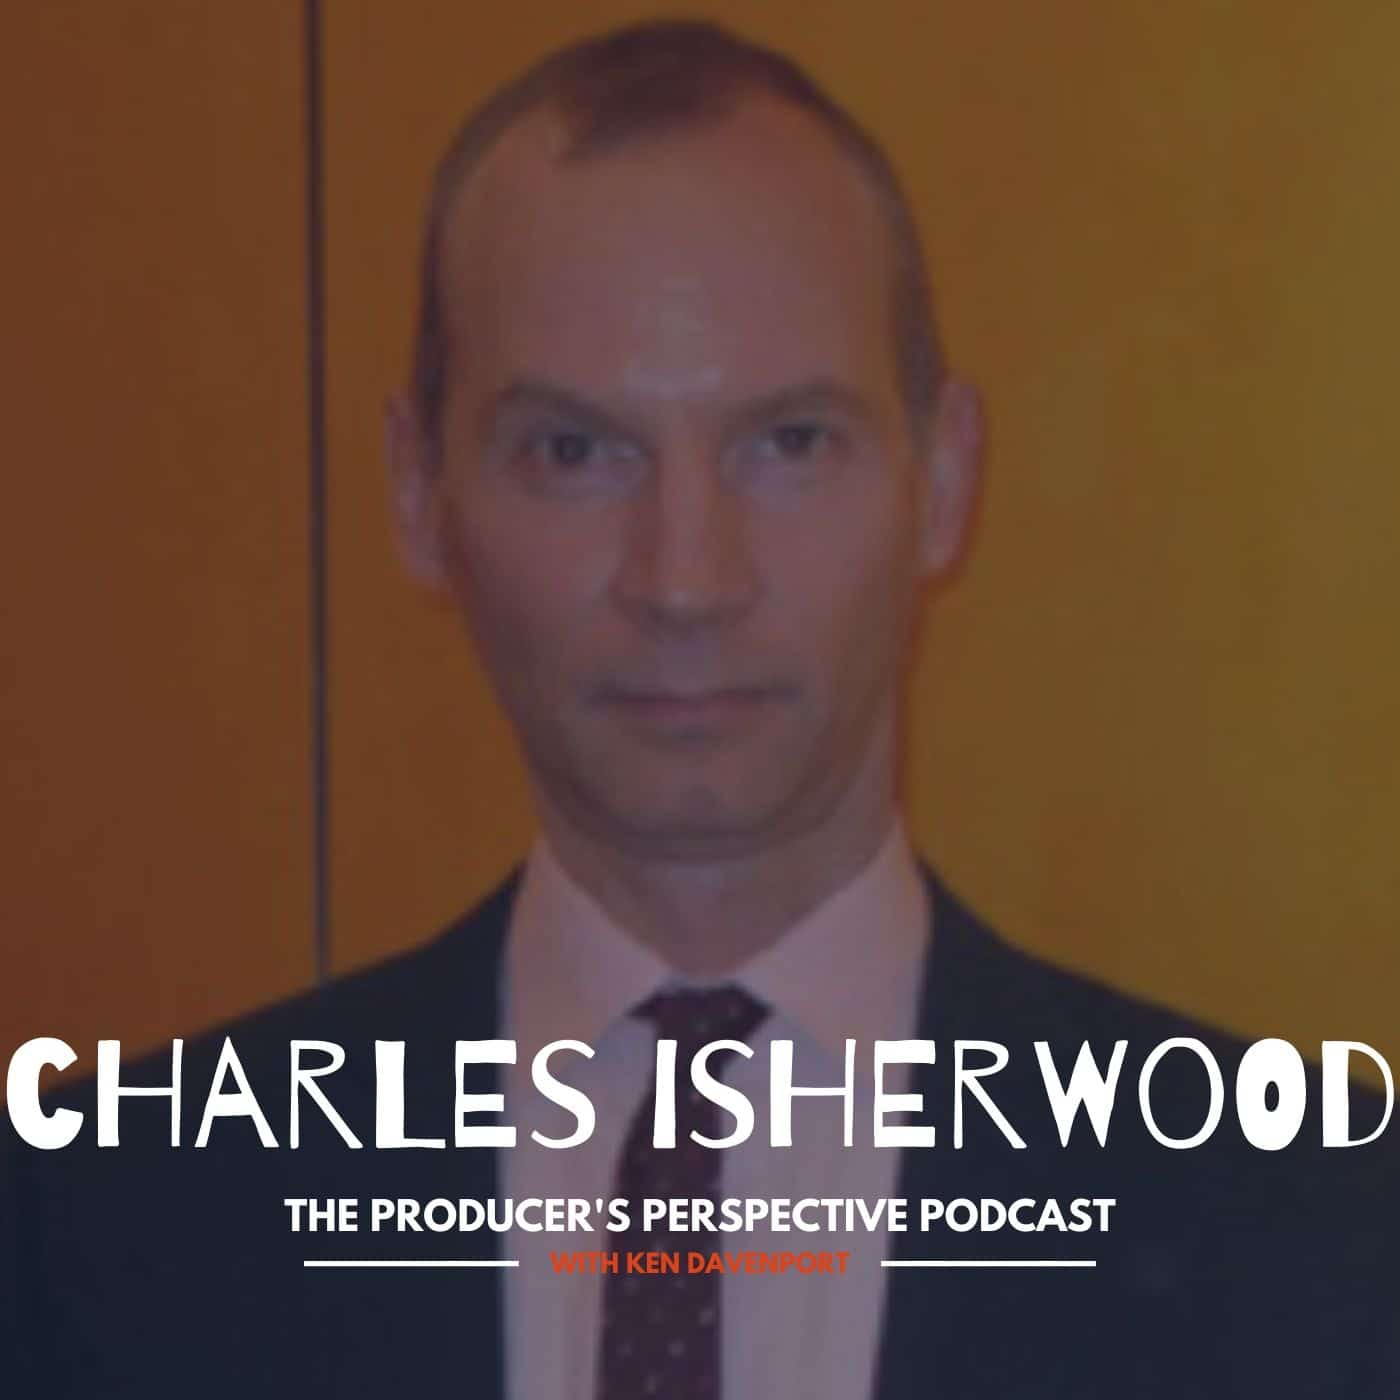 Ken Davenport's The Producer's Perspective Podcast Episode 88 - Charles Isherwoof